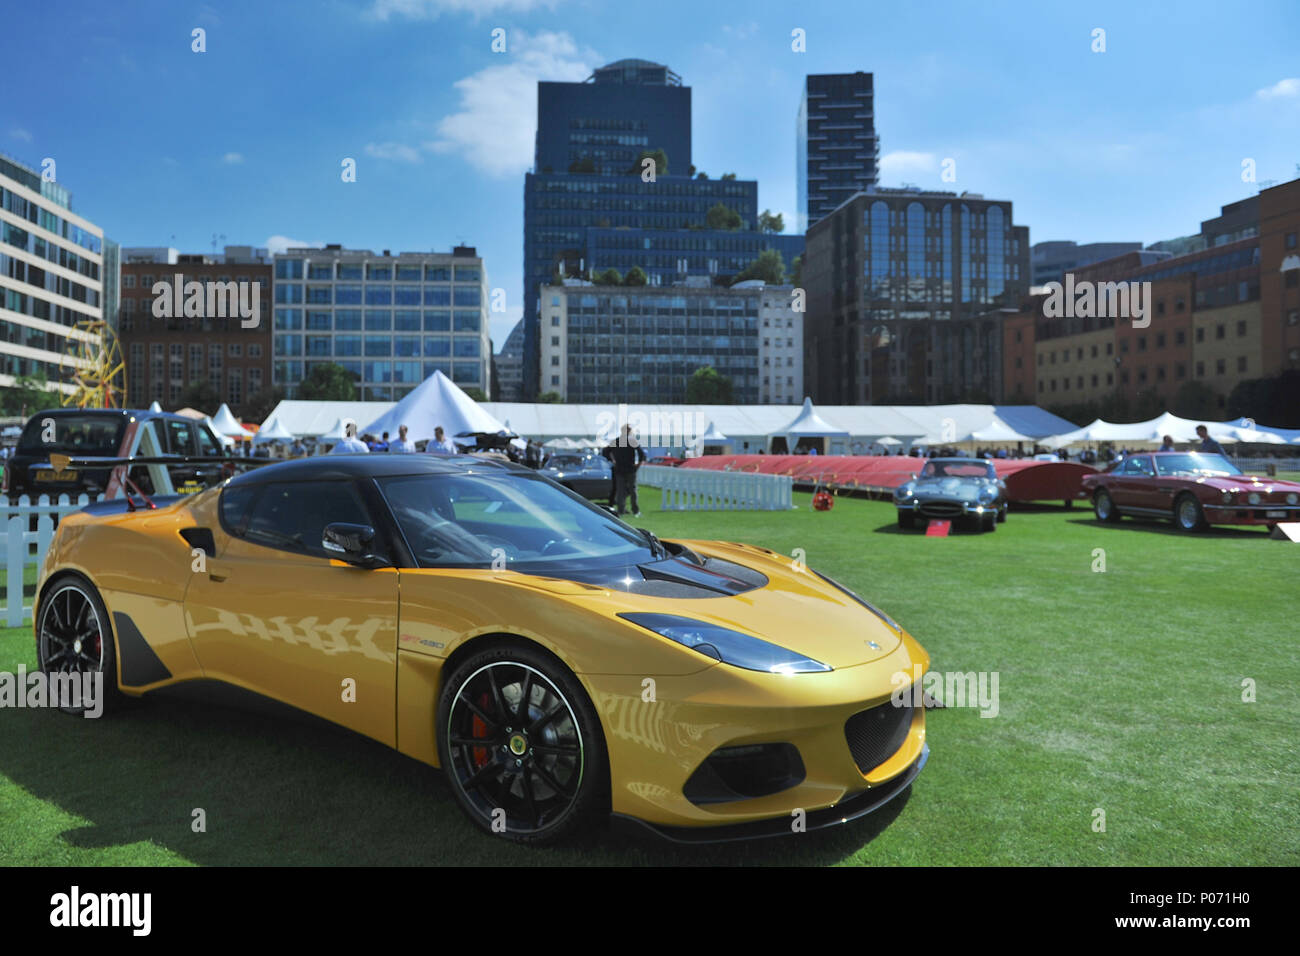 https://c8.alamy.com/comp/P071H0/london-uk-8-june-2018-a-lotus-evora-gt430-on-display-at-the-annual-city-concours-motoring-garden-party-in-the-gardens-of-the-honourable-artillery-companys-headquarters-city-of-london-united-kingdom-credit-michael-prestonalamy-live-news-P071H0.jpg